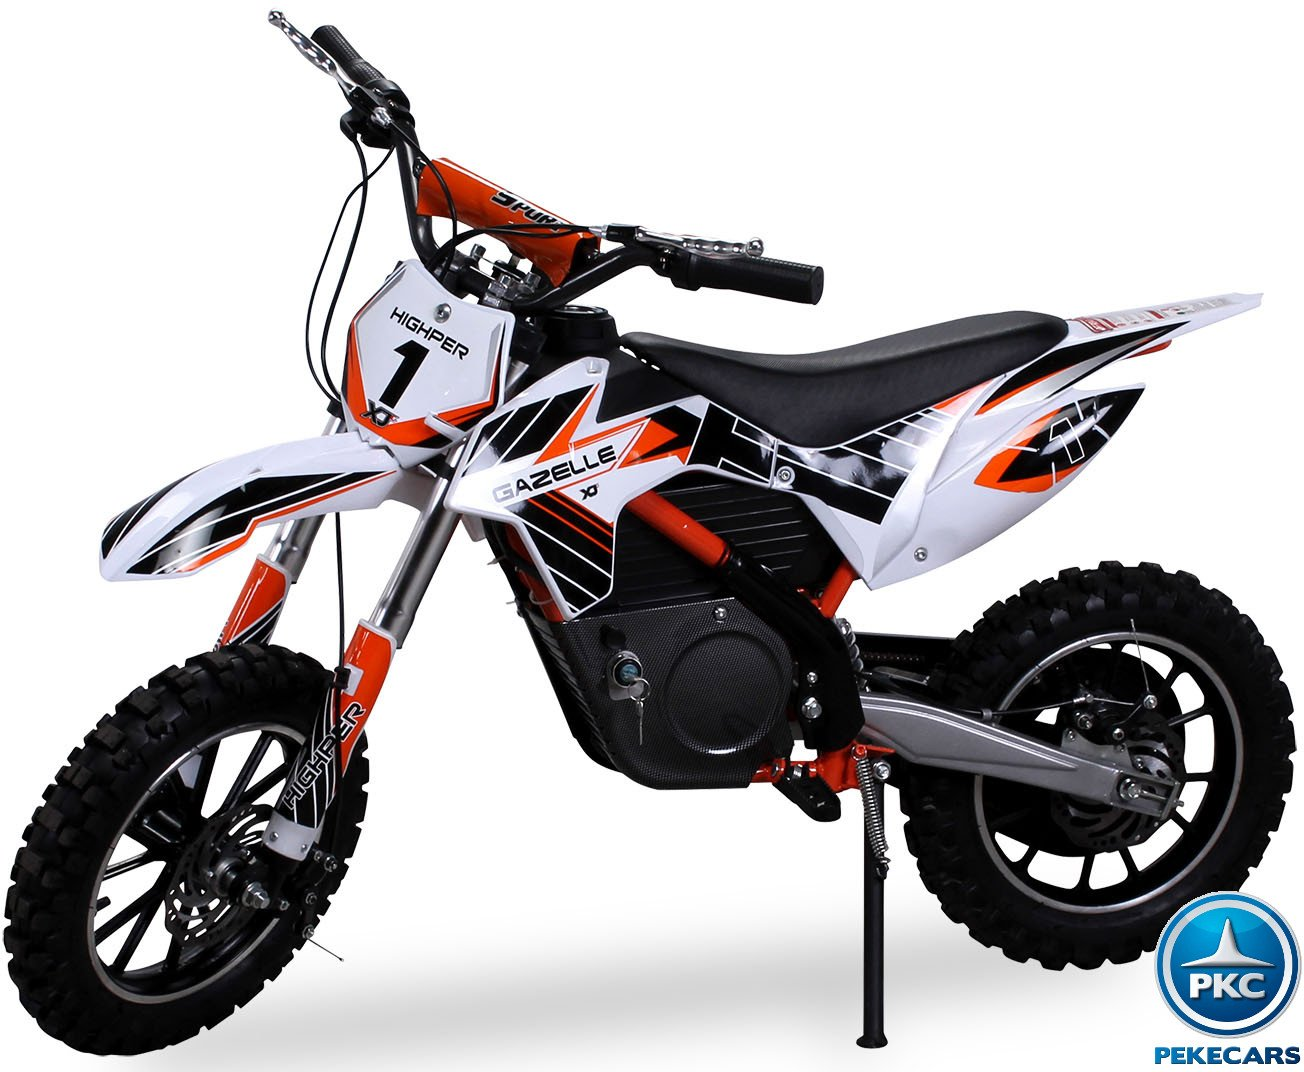 moto mini crossbike gazelle 500w naranja pekecars. Black Bedroom Furniture Sets. Home Design Ideas